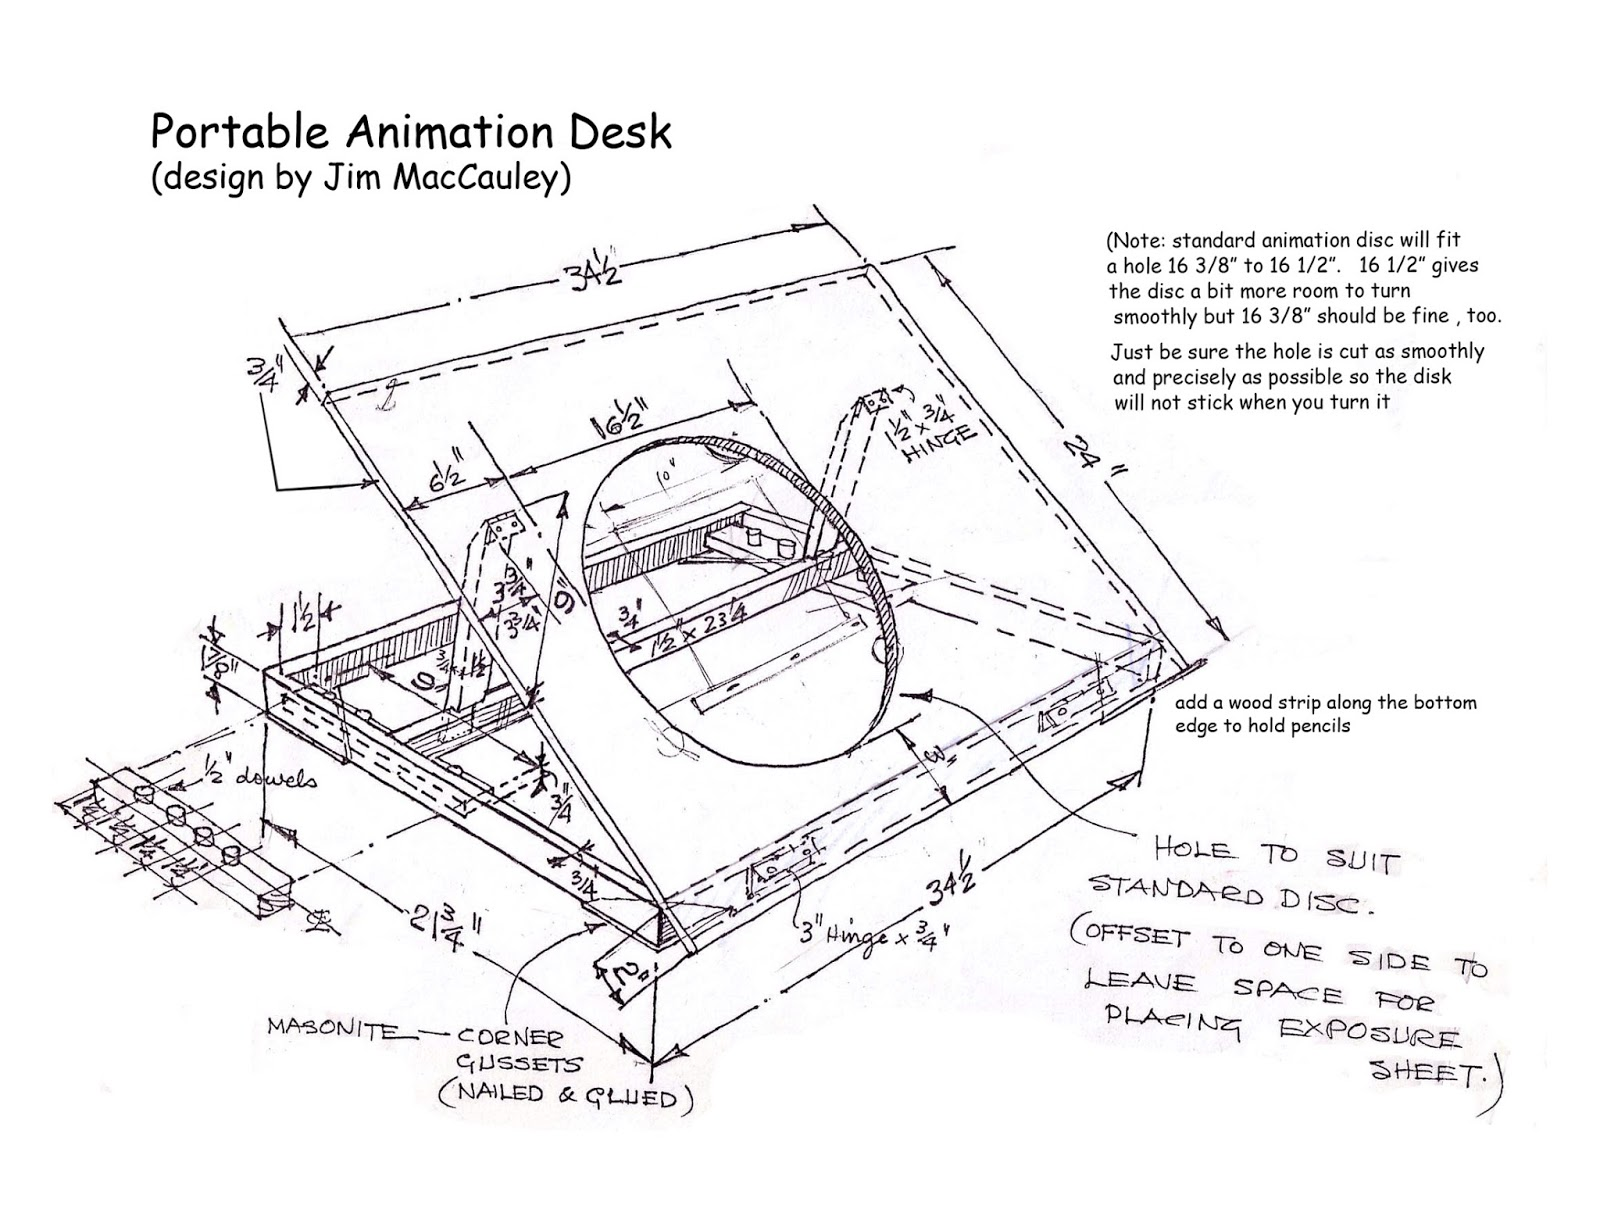 Here Is A Link Showing Sheridan College Animation Student Brock Gallagher  Making An Animation Desk Very Similar To The One Shown In The Plans Above: